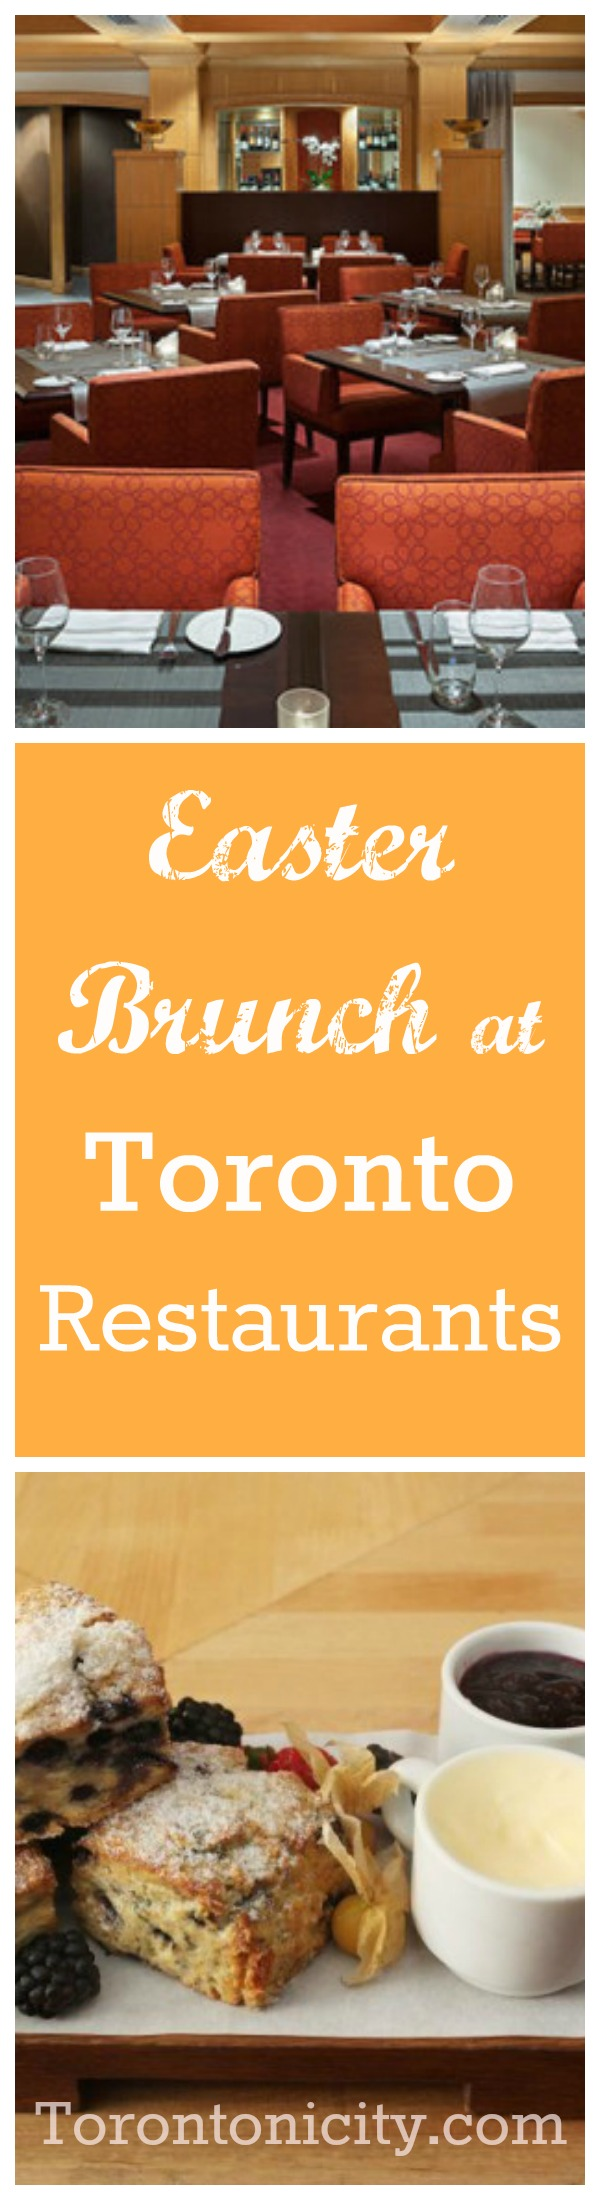 Easter Brunch at Toronto Restaurants 2016 collage